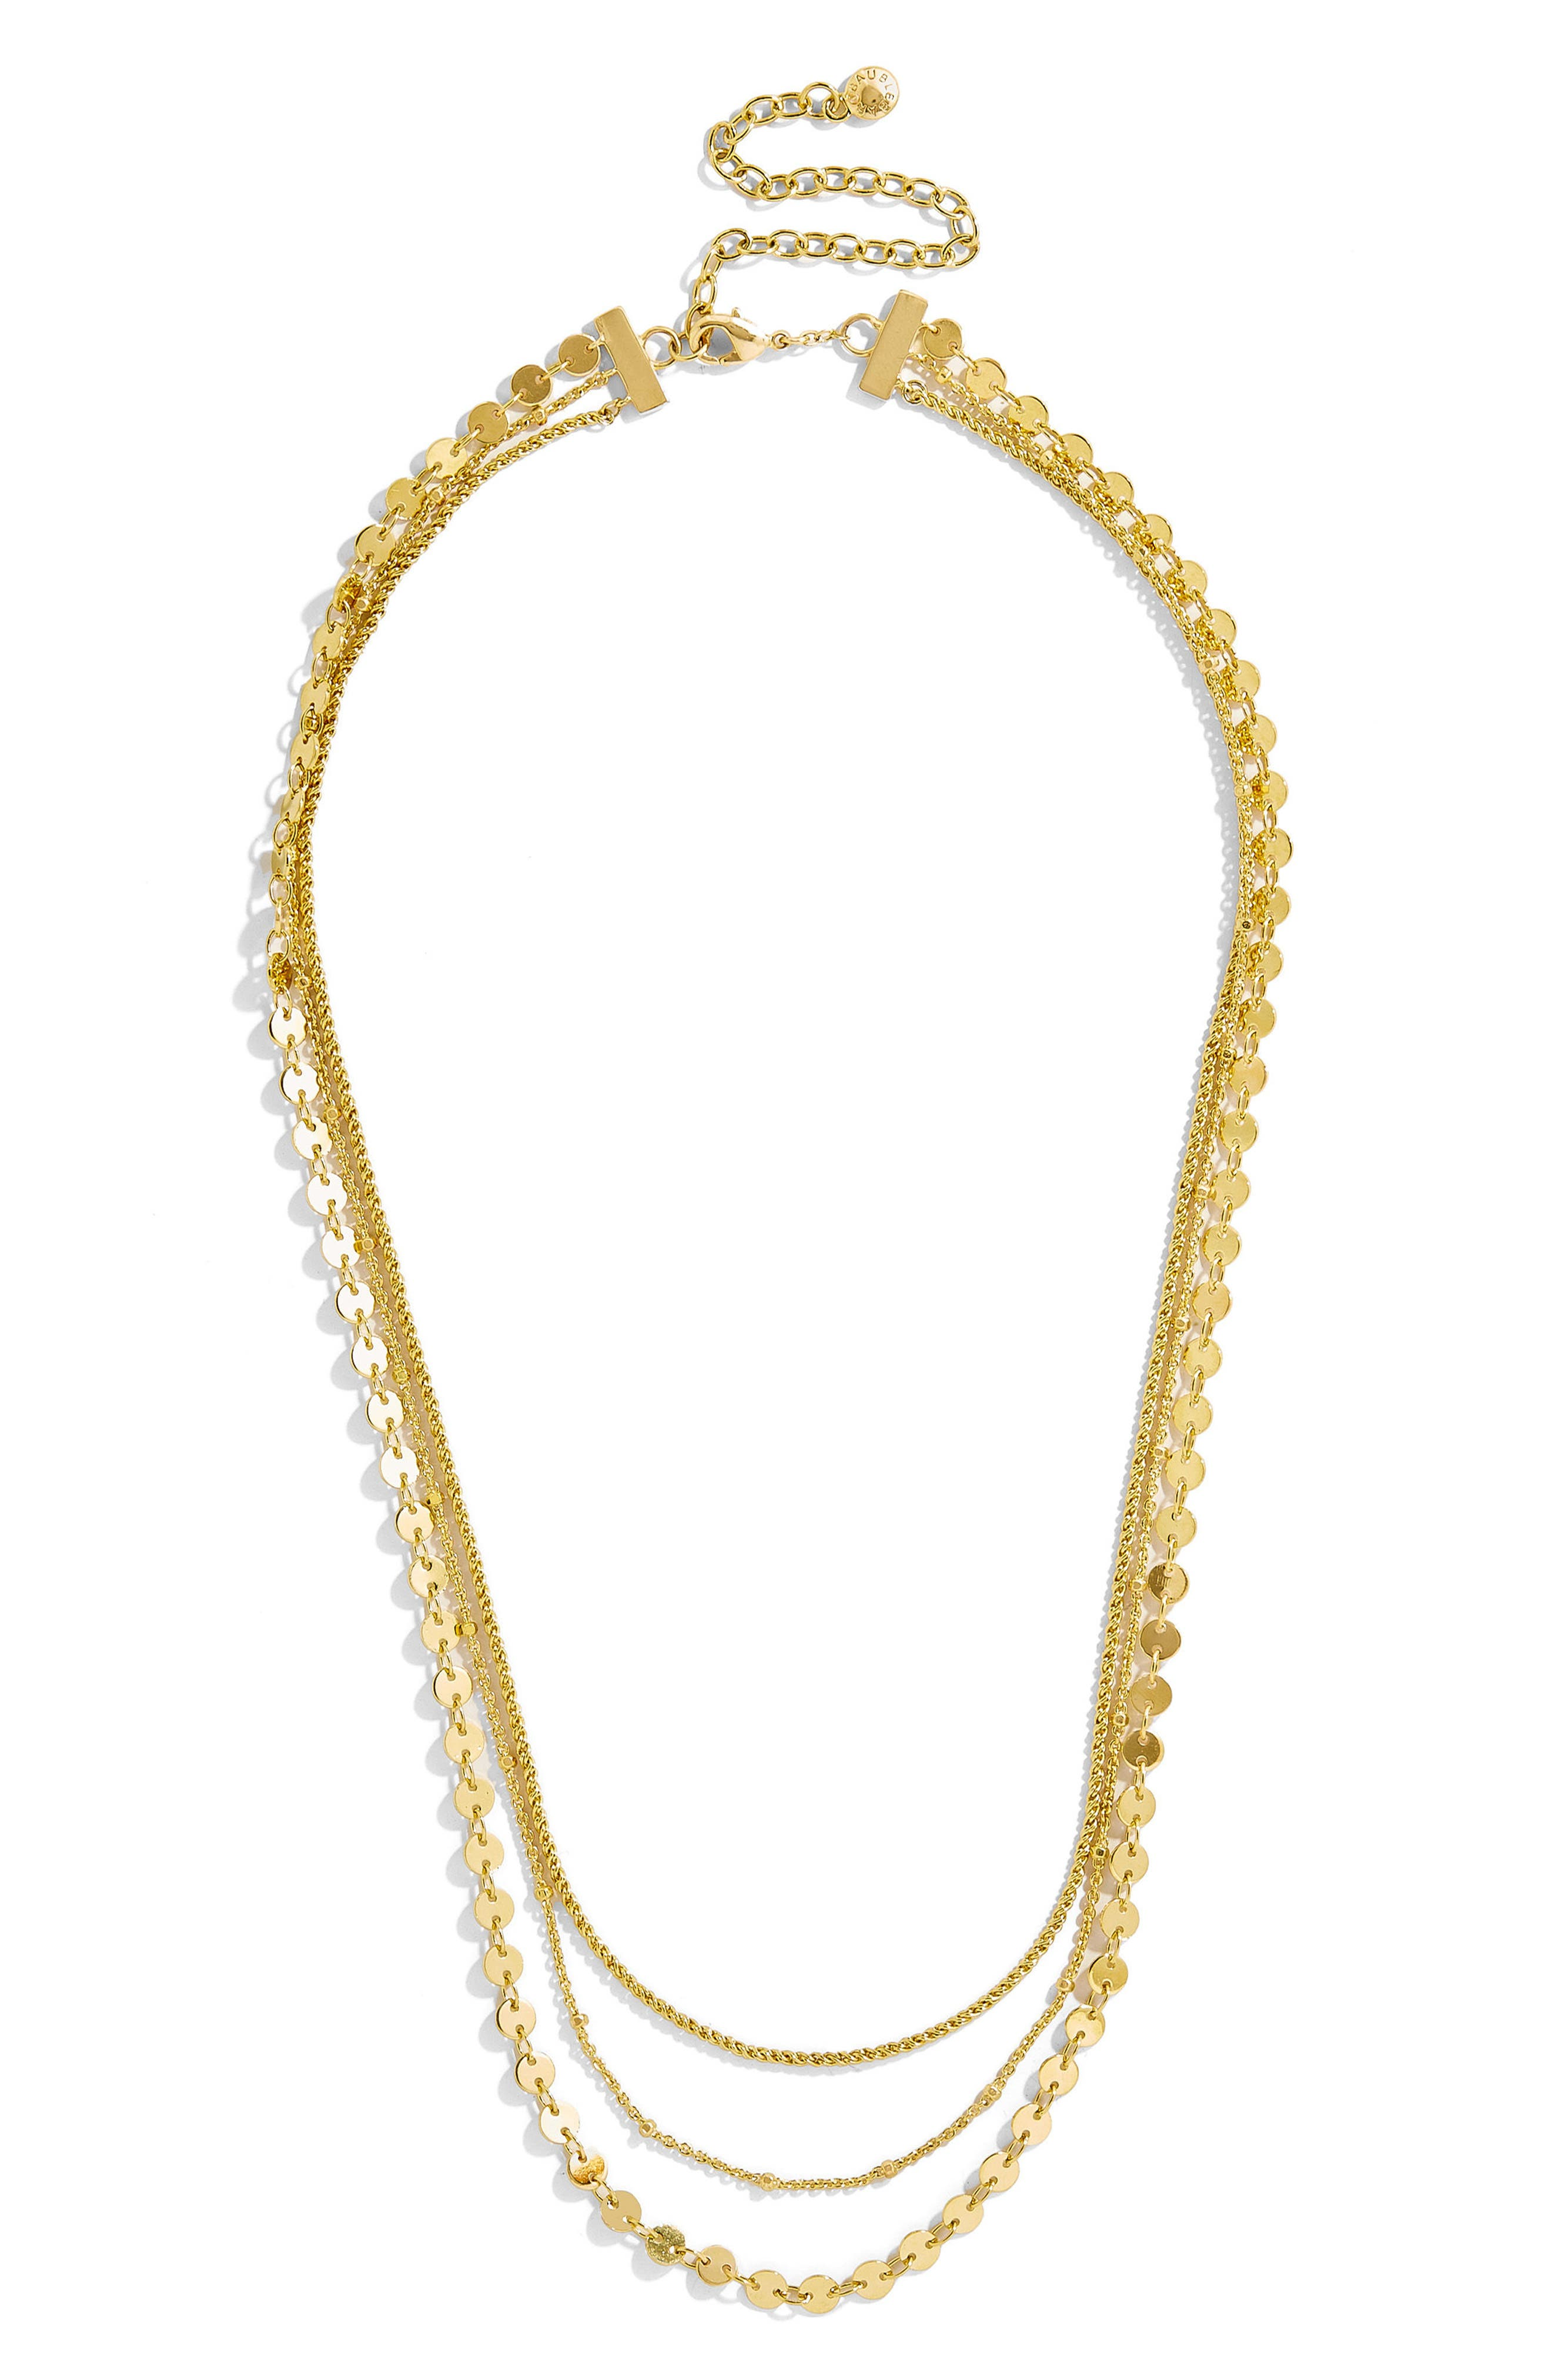 Ariana Multistrand Necklace,                             Main thumbnail 1, color,                             Gold